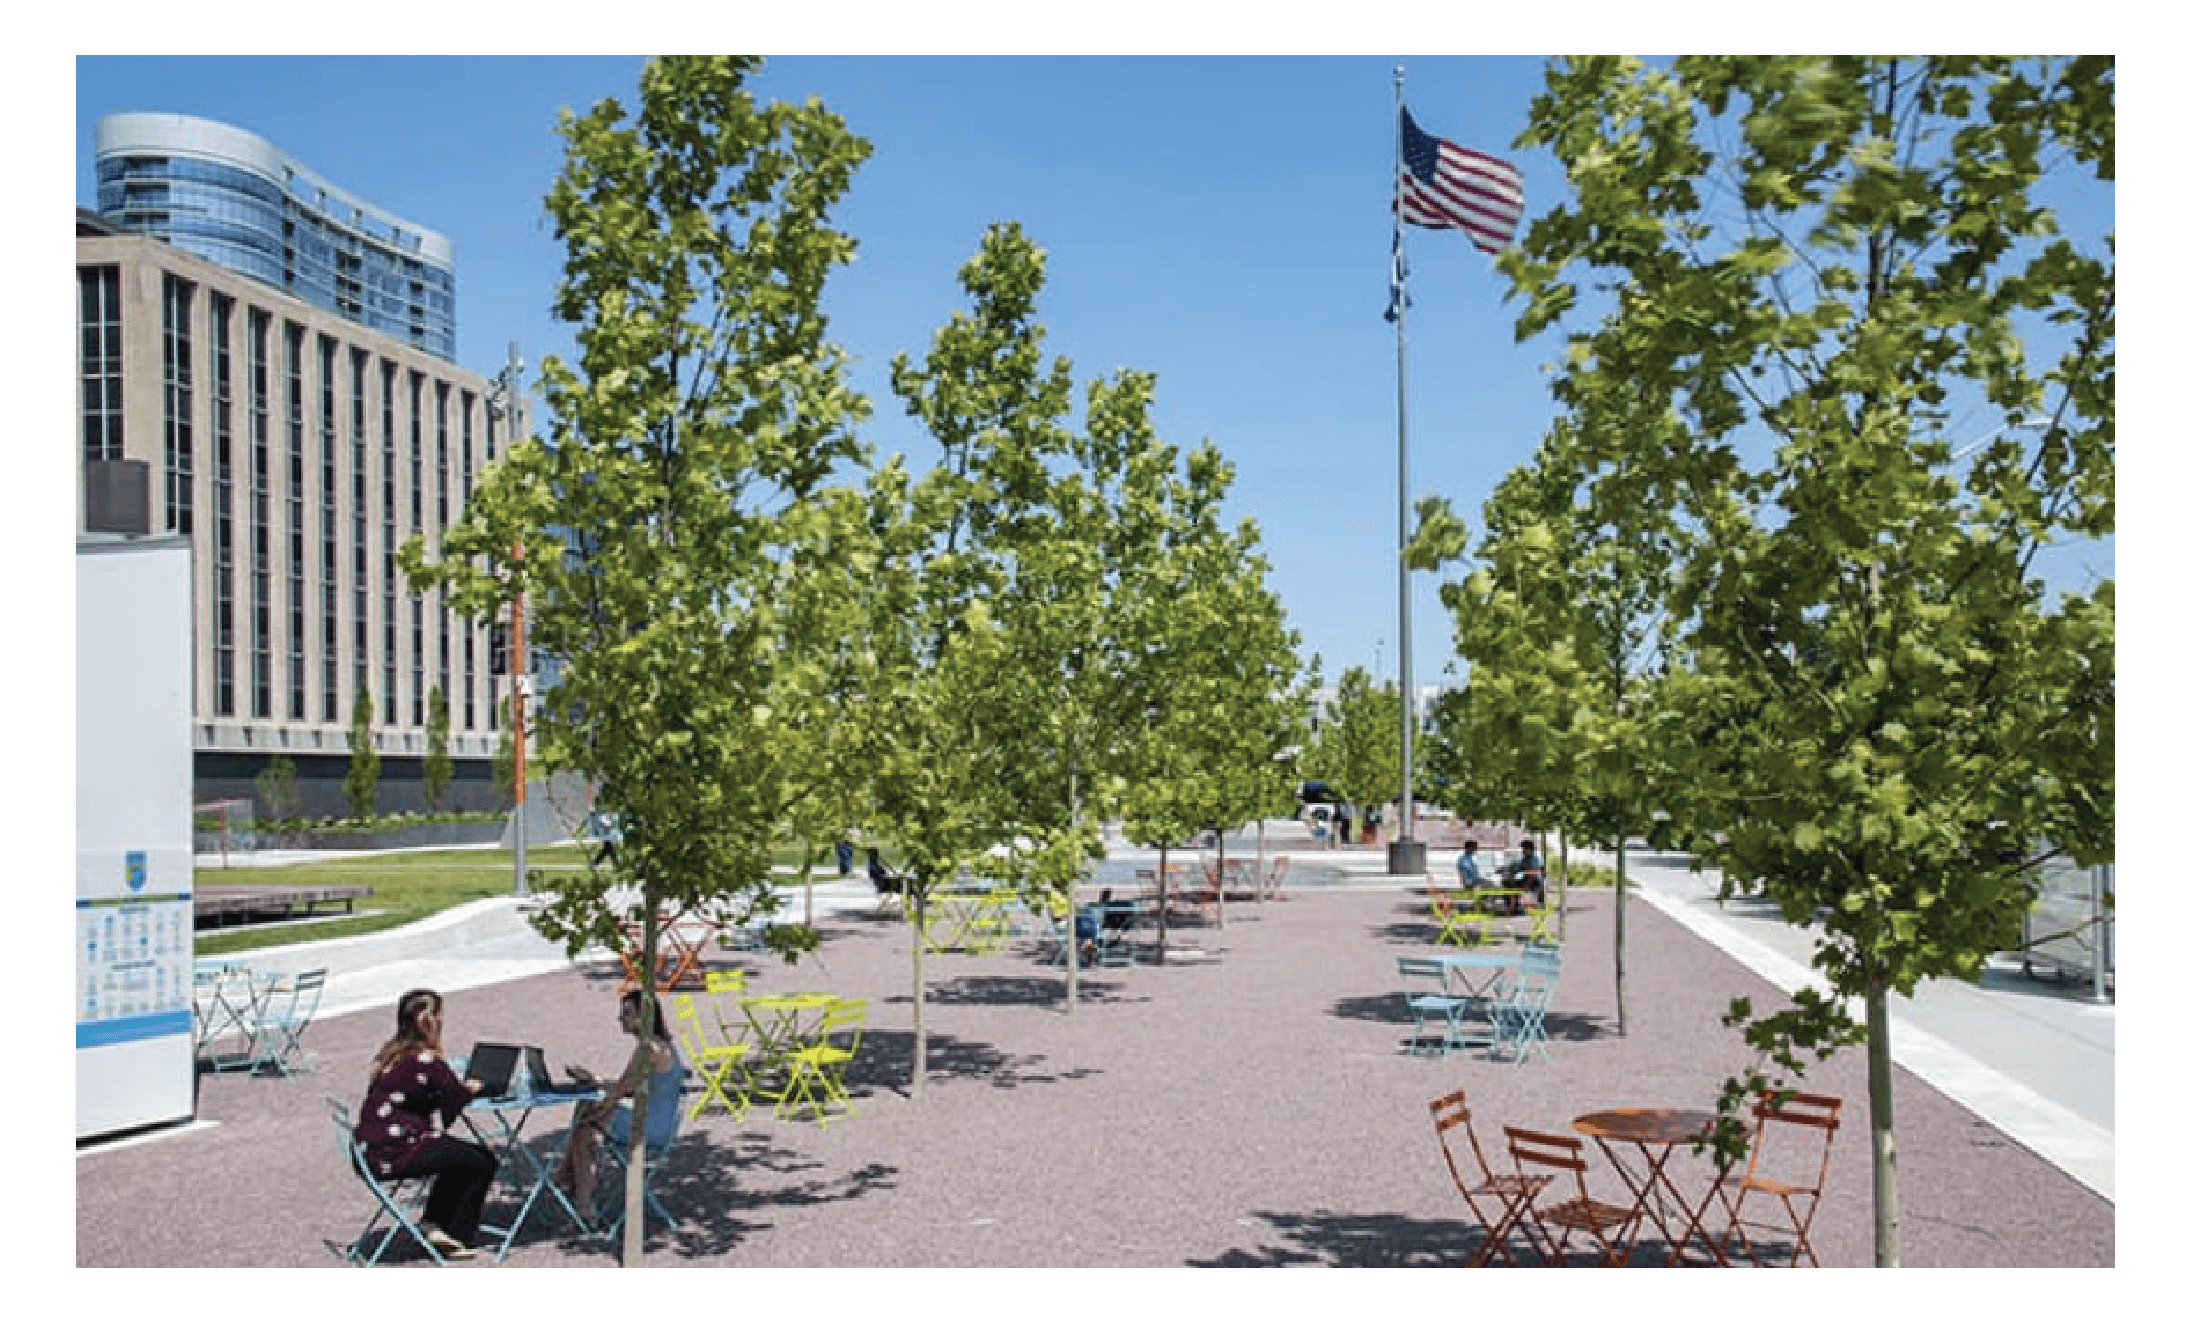 Richard G Lugar Plaza in Indianapolis, IN